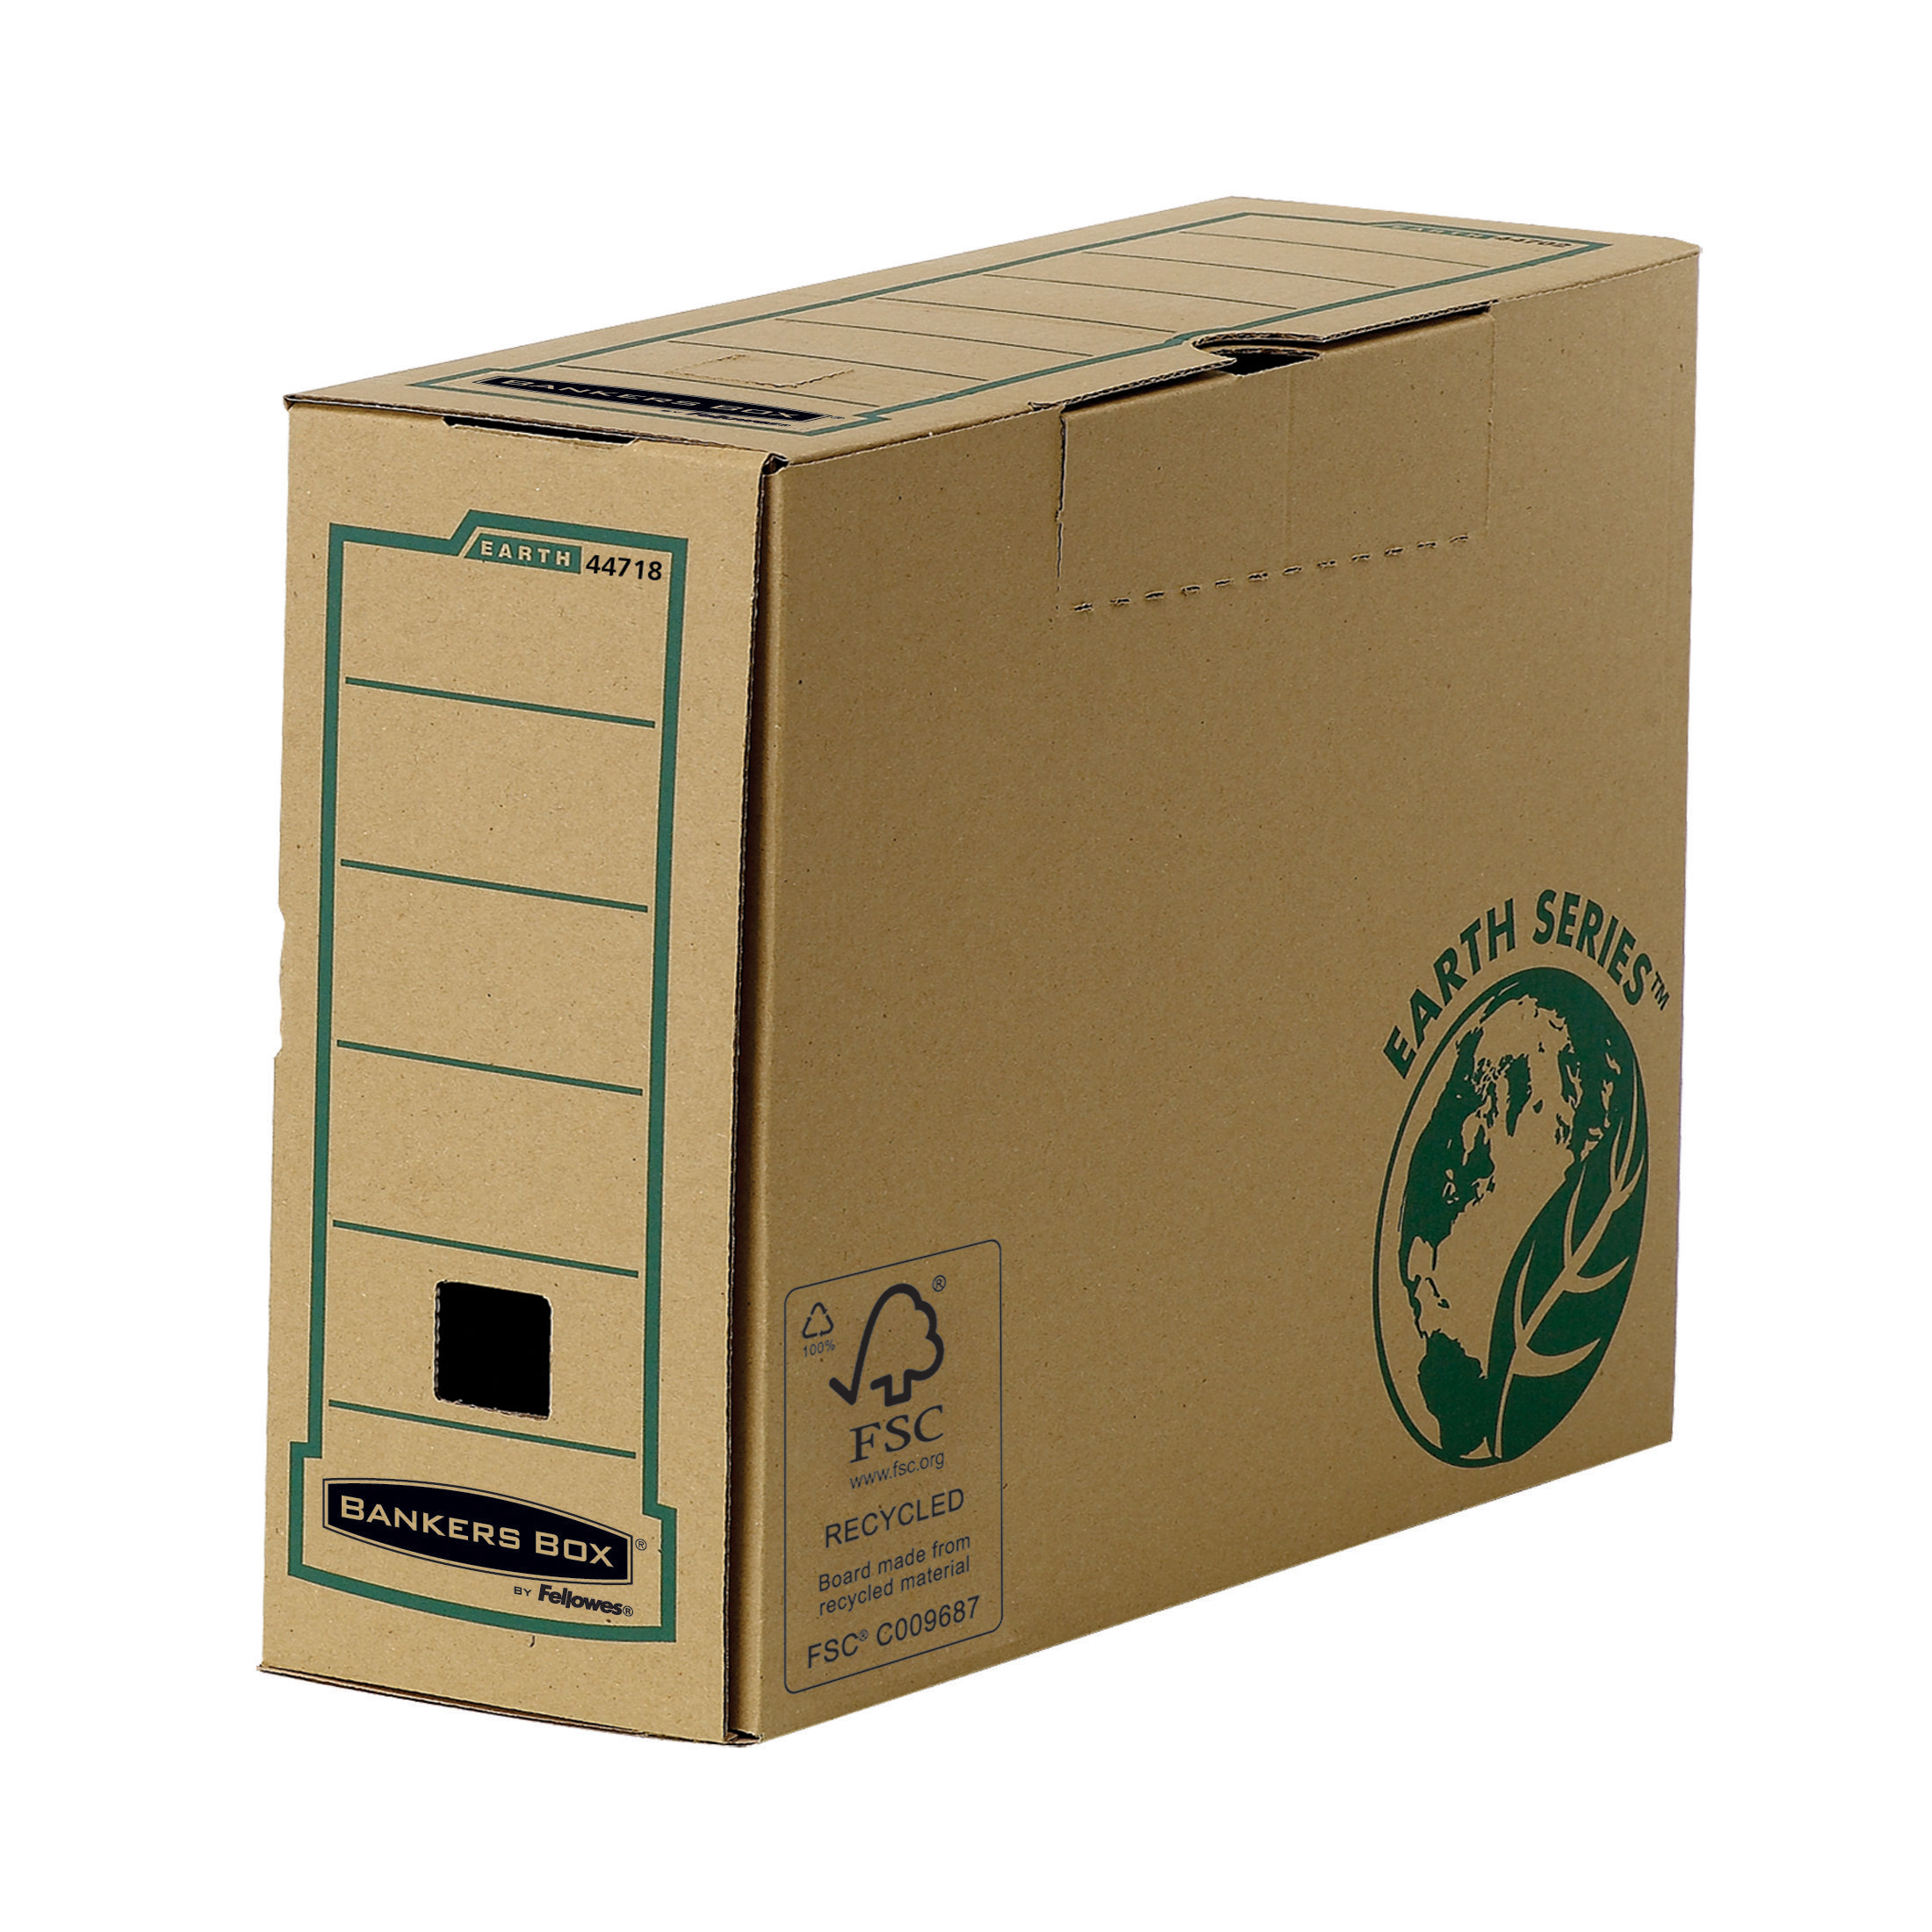 Storage Bags Bankers Box by Fellowes Earth Srs Transfer Bx File Rcyc FSC Tab Lock Lid W100mm A4 Ref 4470201 Pack 20